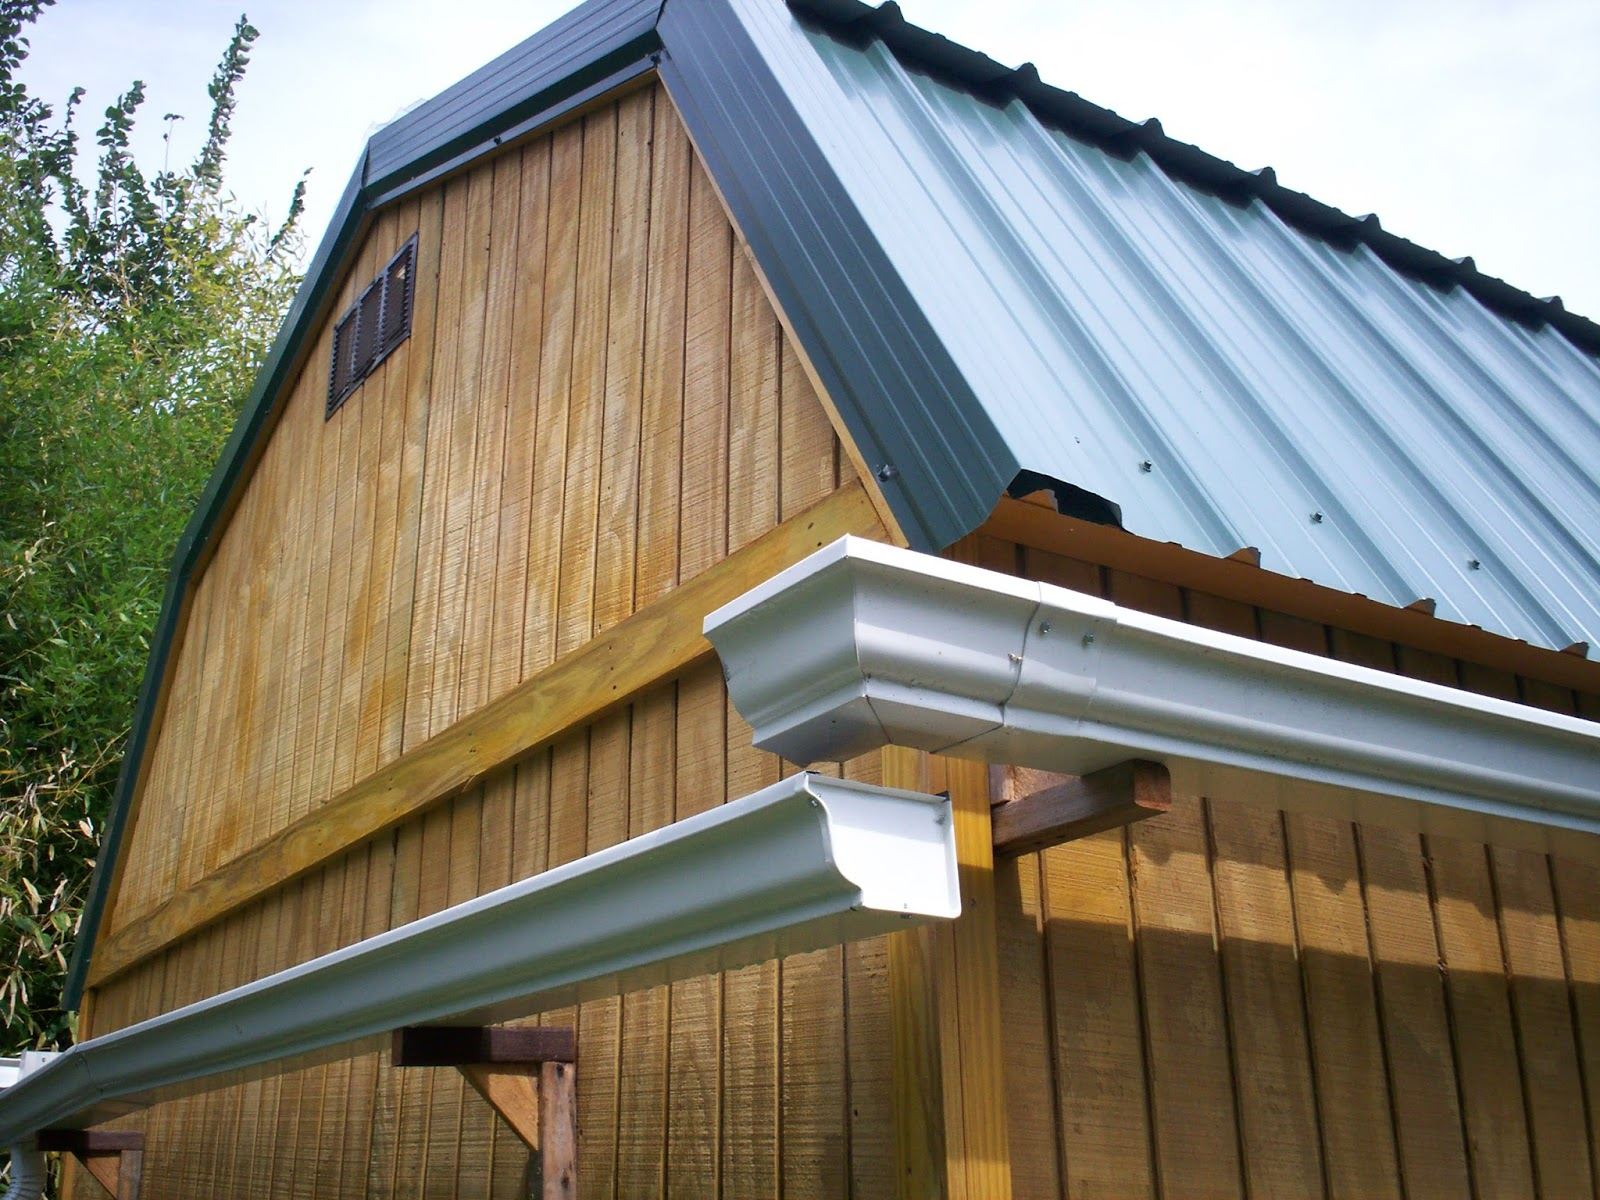 How to install a downspout in a gutter - Awesome Guttering Florida Gutter Downspout With How To Install Gutters